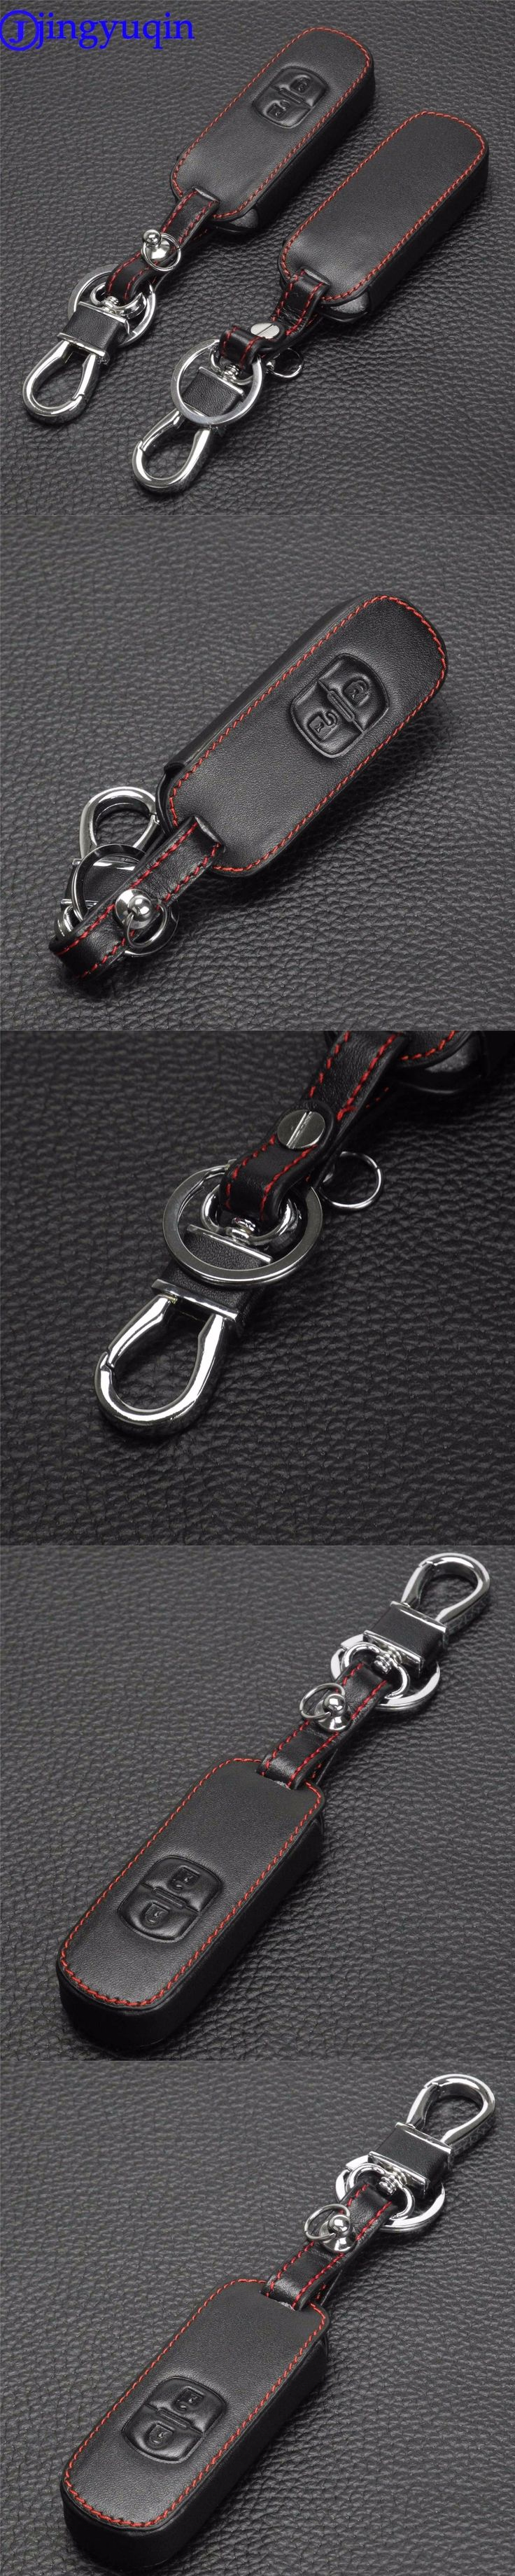 jingyuqin Remote 2 Buttons Leather Car Key Fob Cover Case For Mazda 2 / 3/ 5/ 6 CX-3 CX-4 CX-5 CX-7 CX-9 Atenza Axela MX5